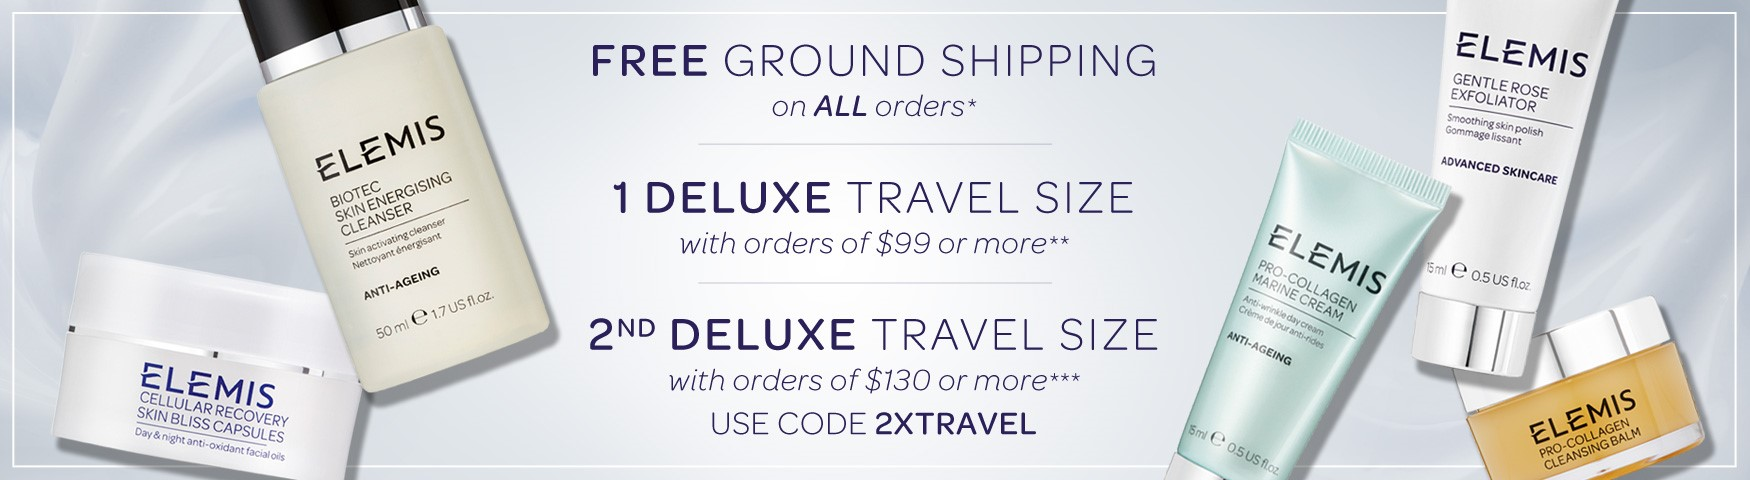 Free Shipping on All Orders + Receive a Double Deluxe Travel Size on $130+ SHOP NOW